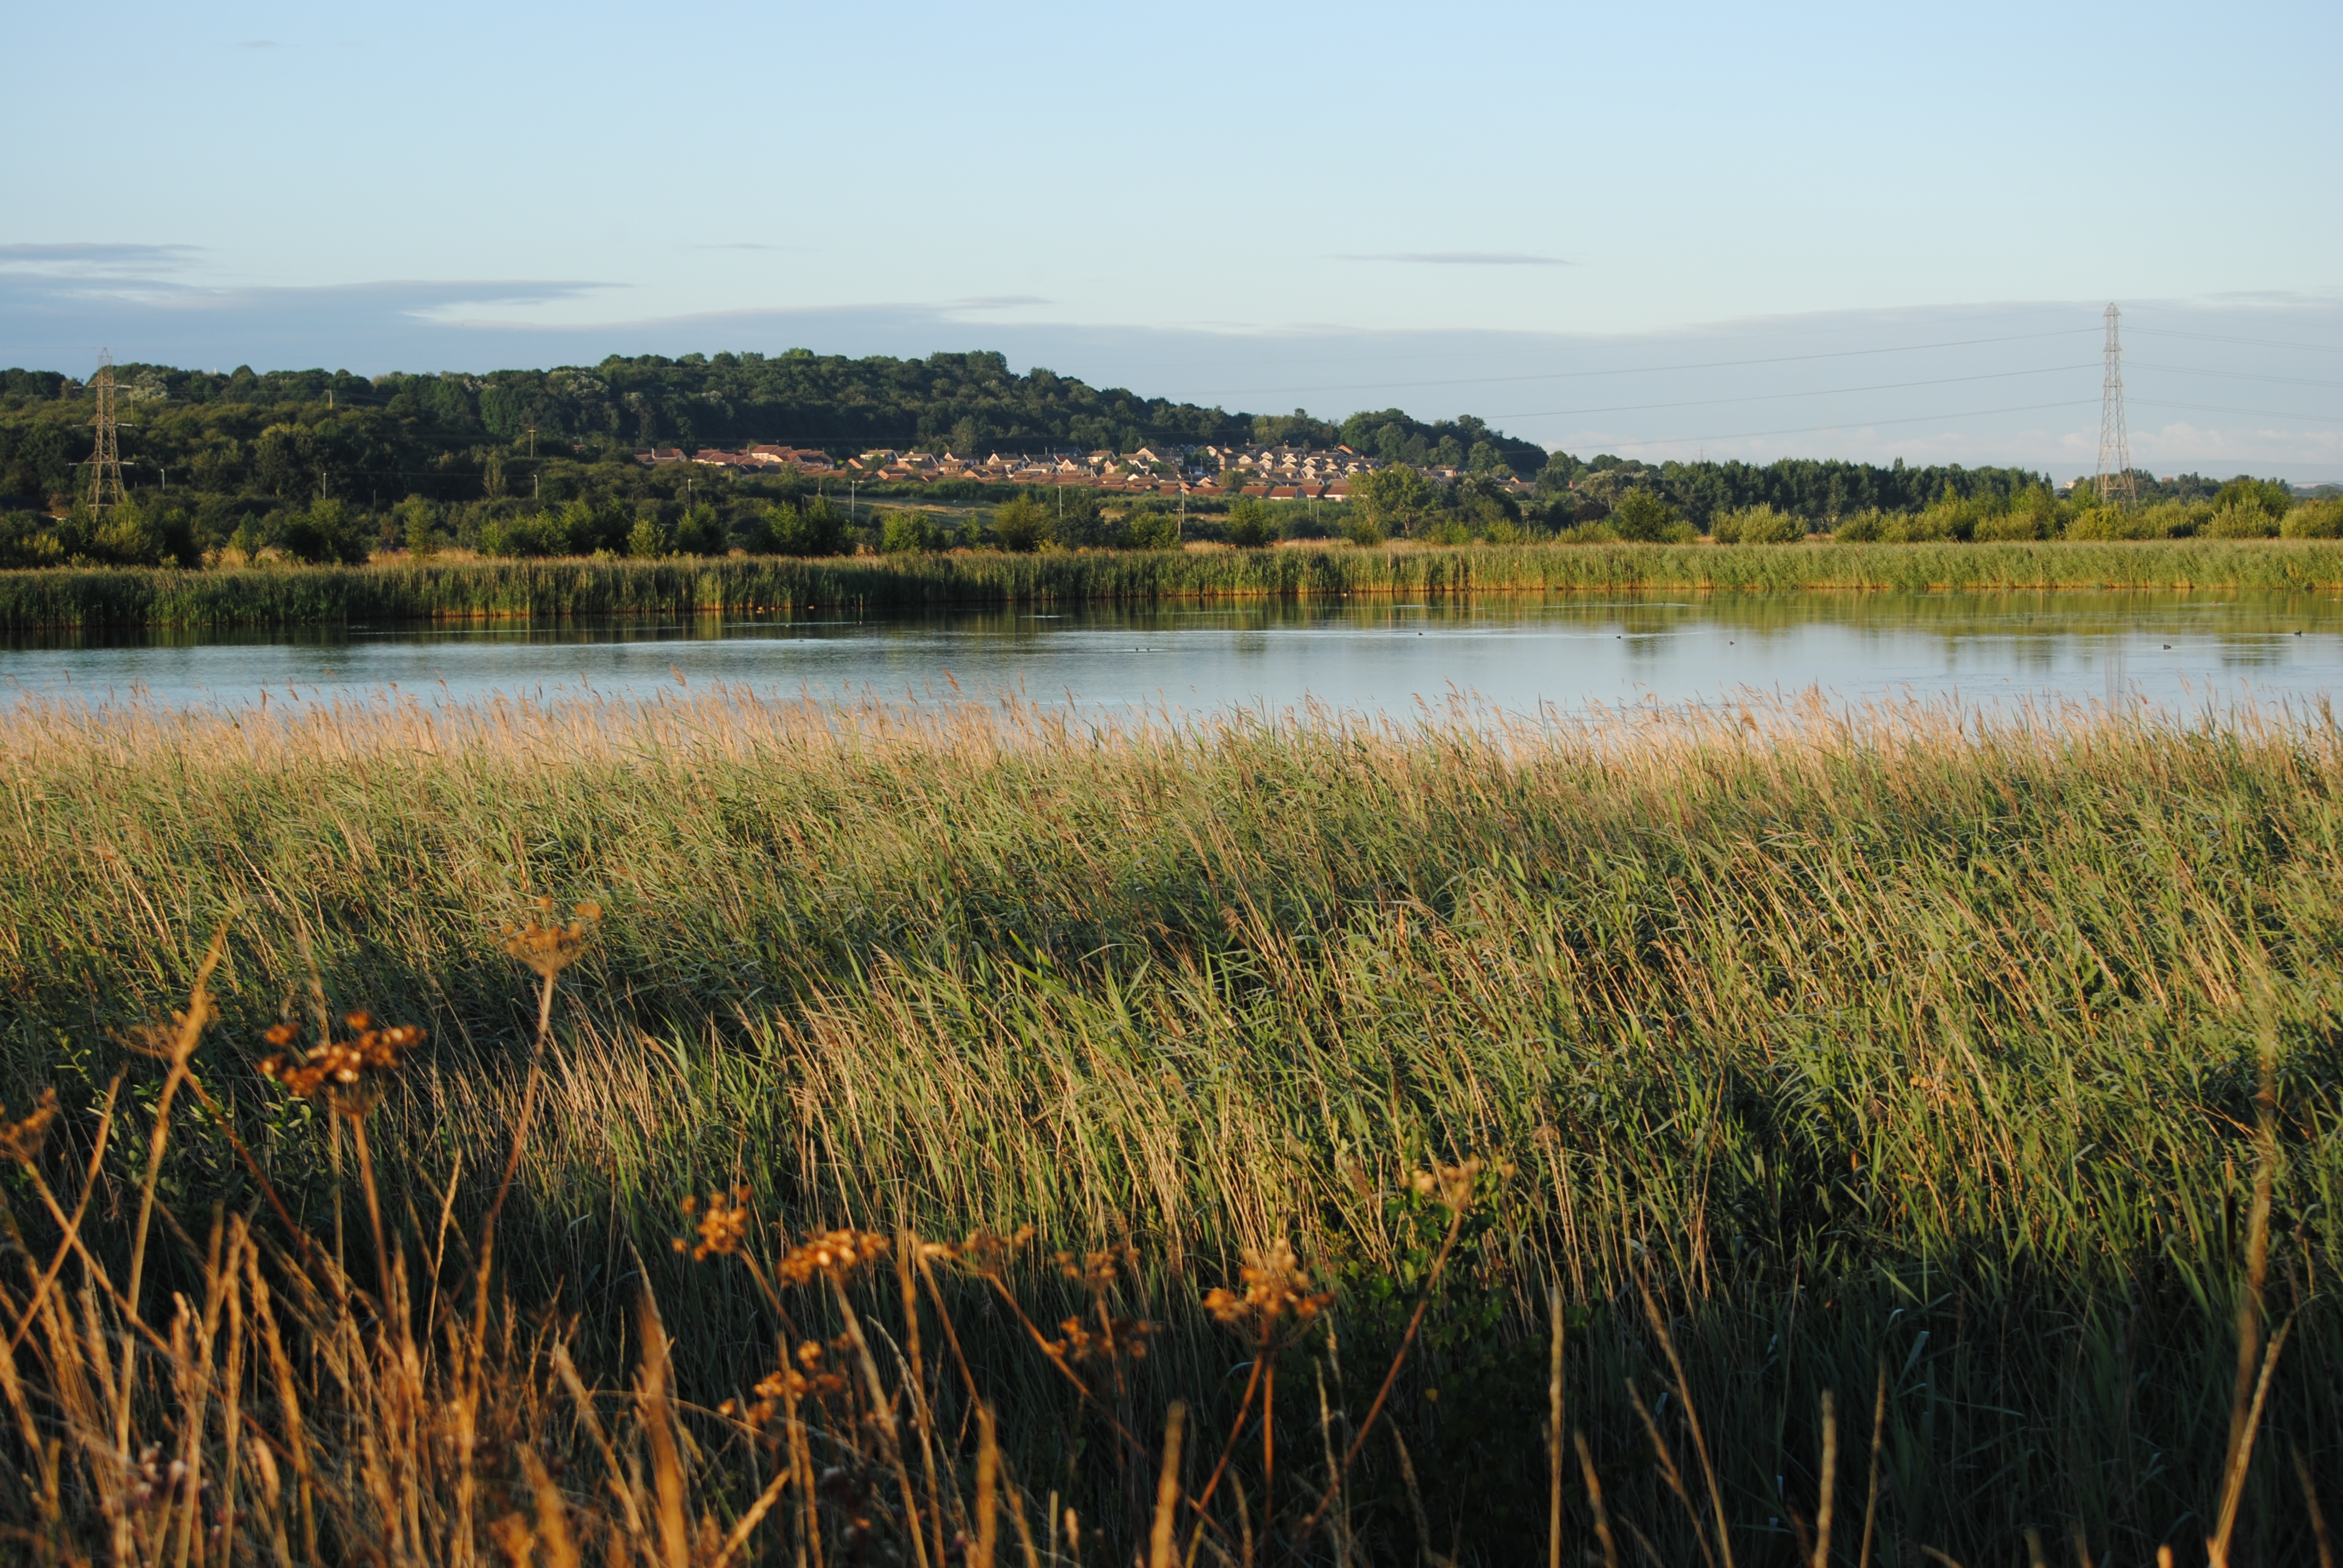 Fairburn Ings Nature Reserve - by Liberty Monkman